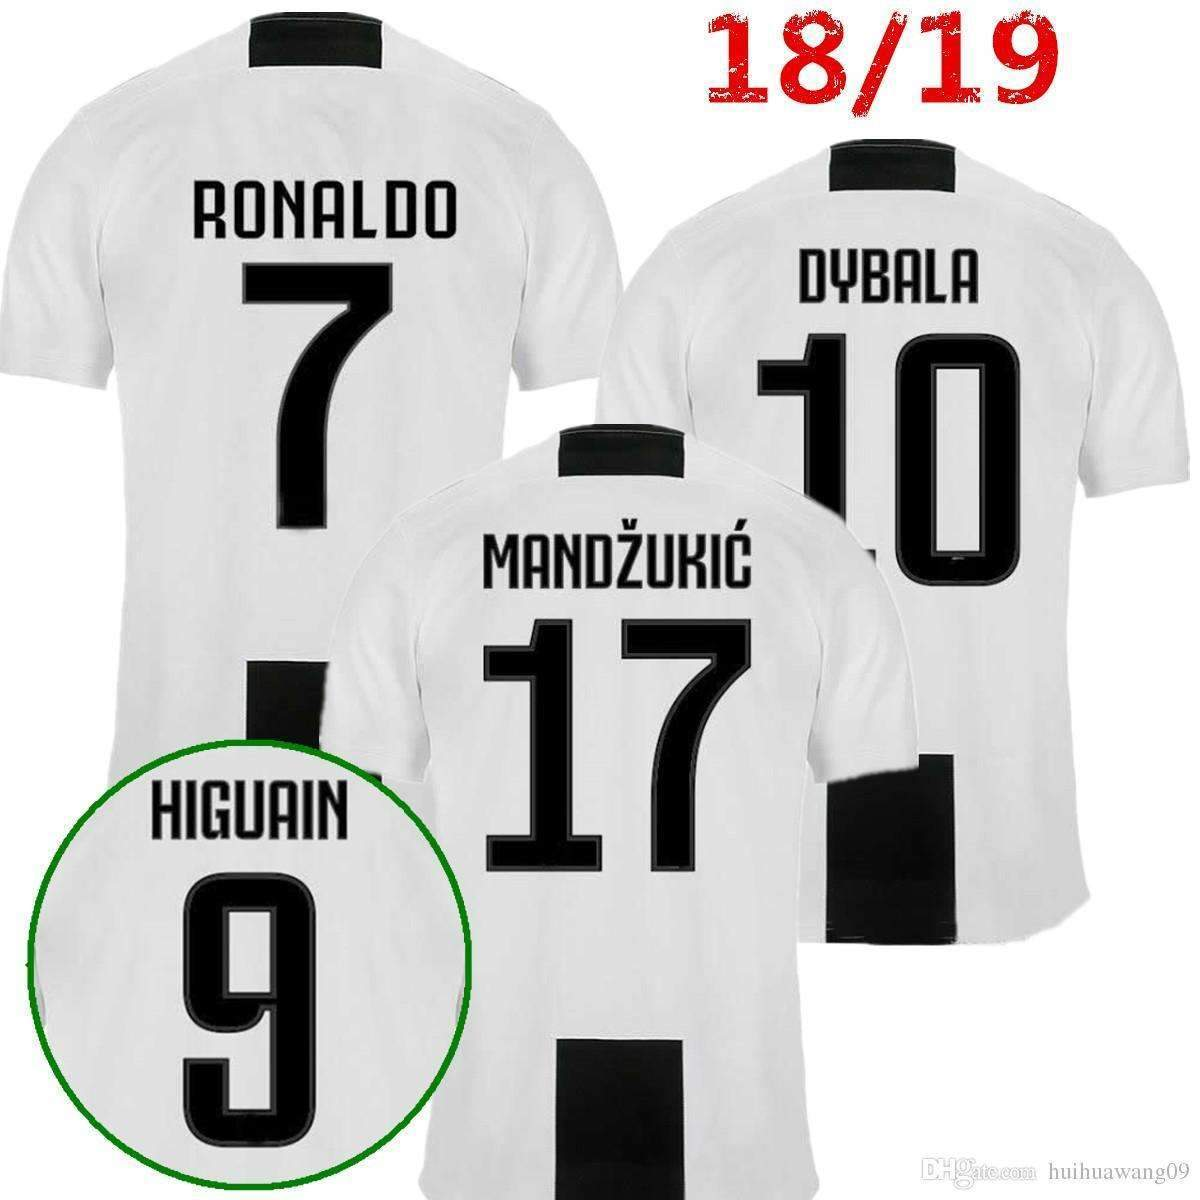 wholesale dealer e10e6 31a8f Juventus Cristiano Ronaldo #7 NIKE Home SHIRT SOCCER FUSSBALL Replica  JERSEY FOOTBALL BNWT TOP